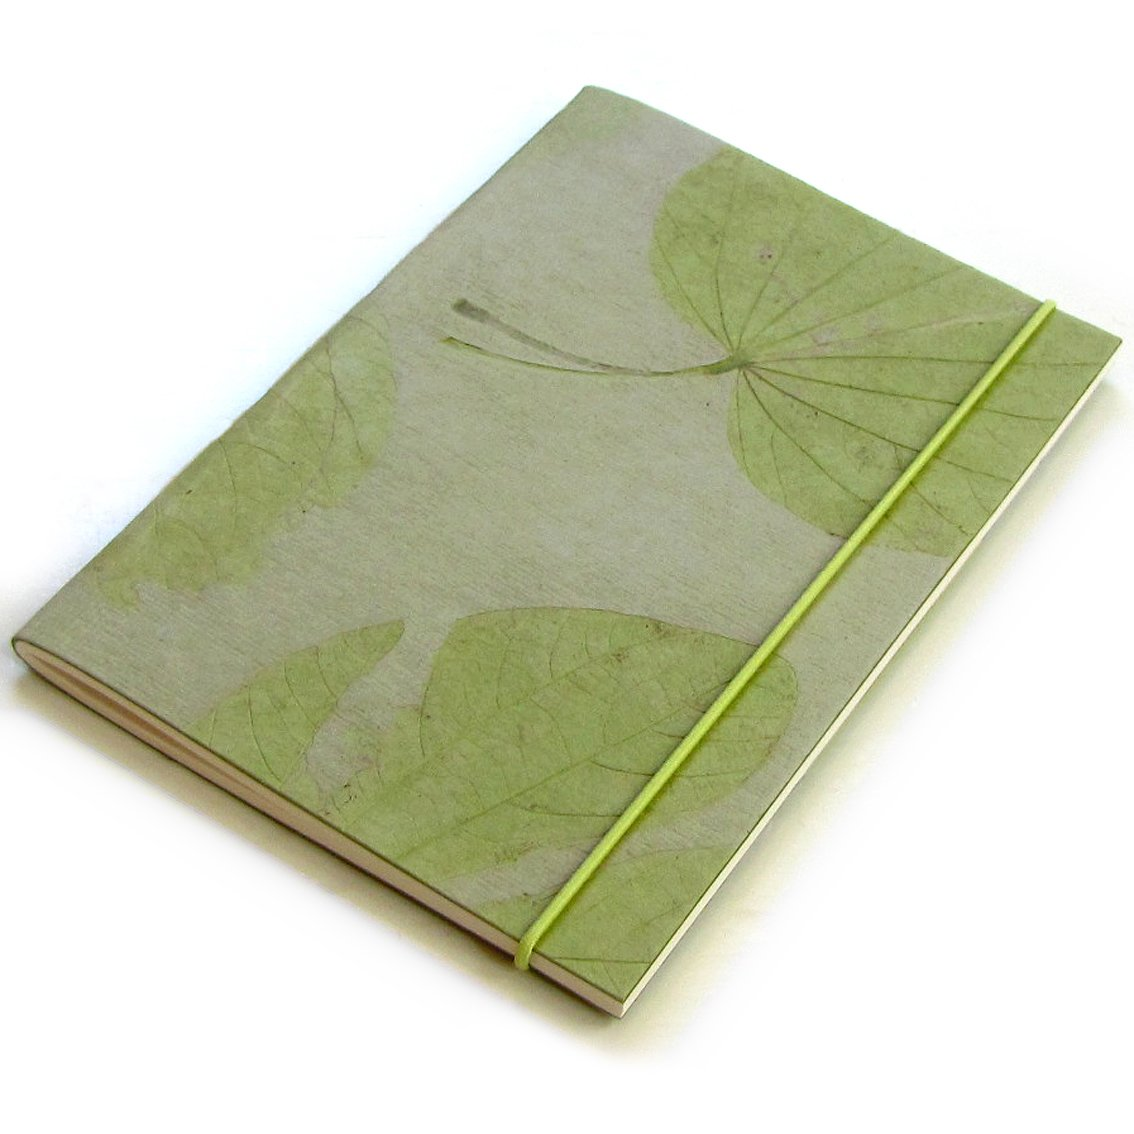 Diary natural heart leaft handmade mint paper sketching 5x7 40pp blank notebook